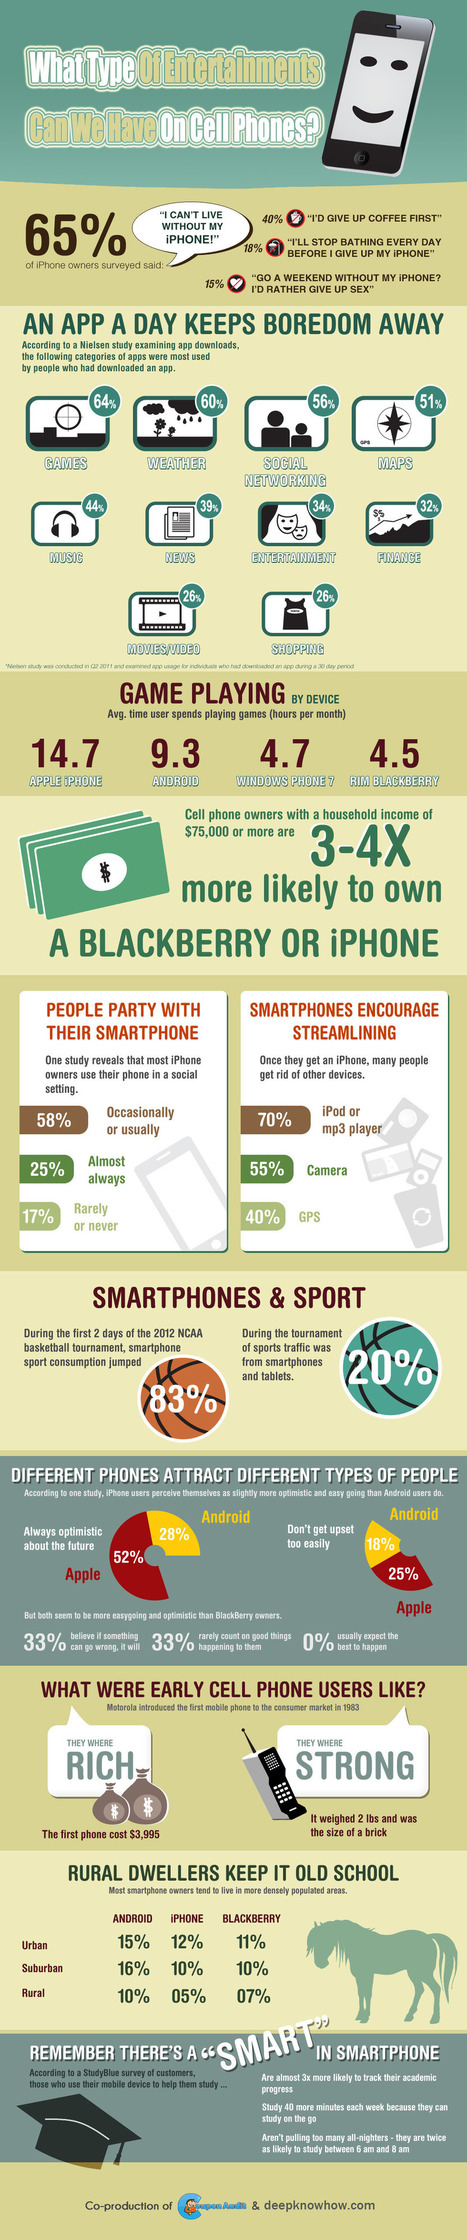 What Type Of Entertainments Can We Have On Cell Phones [Infographic]   iPad   Scoop.it